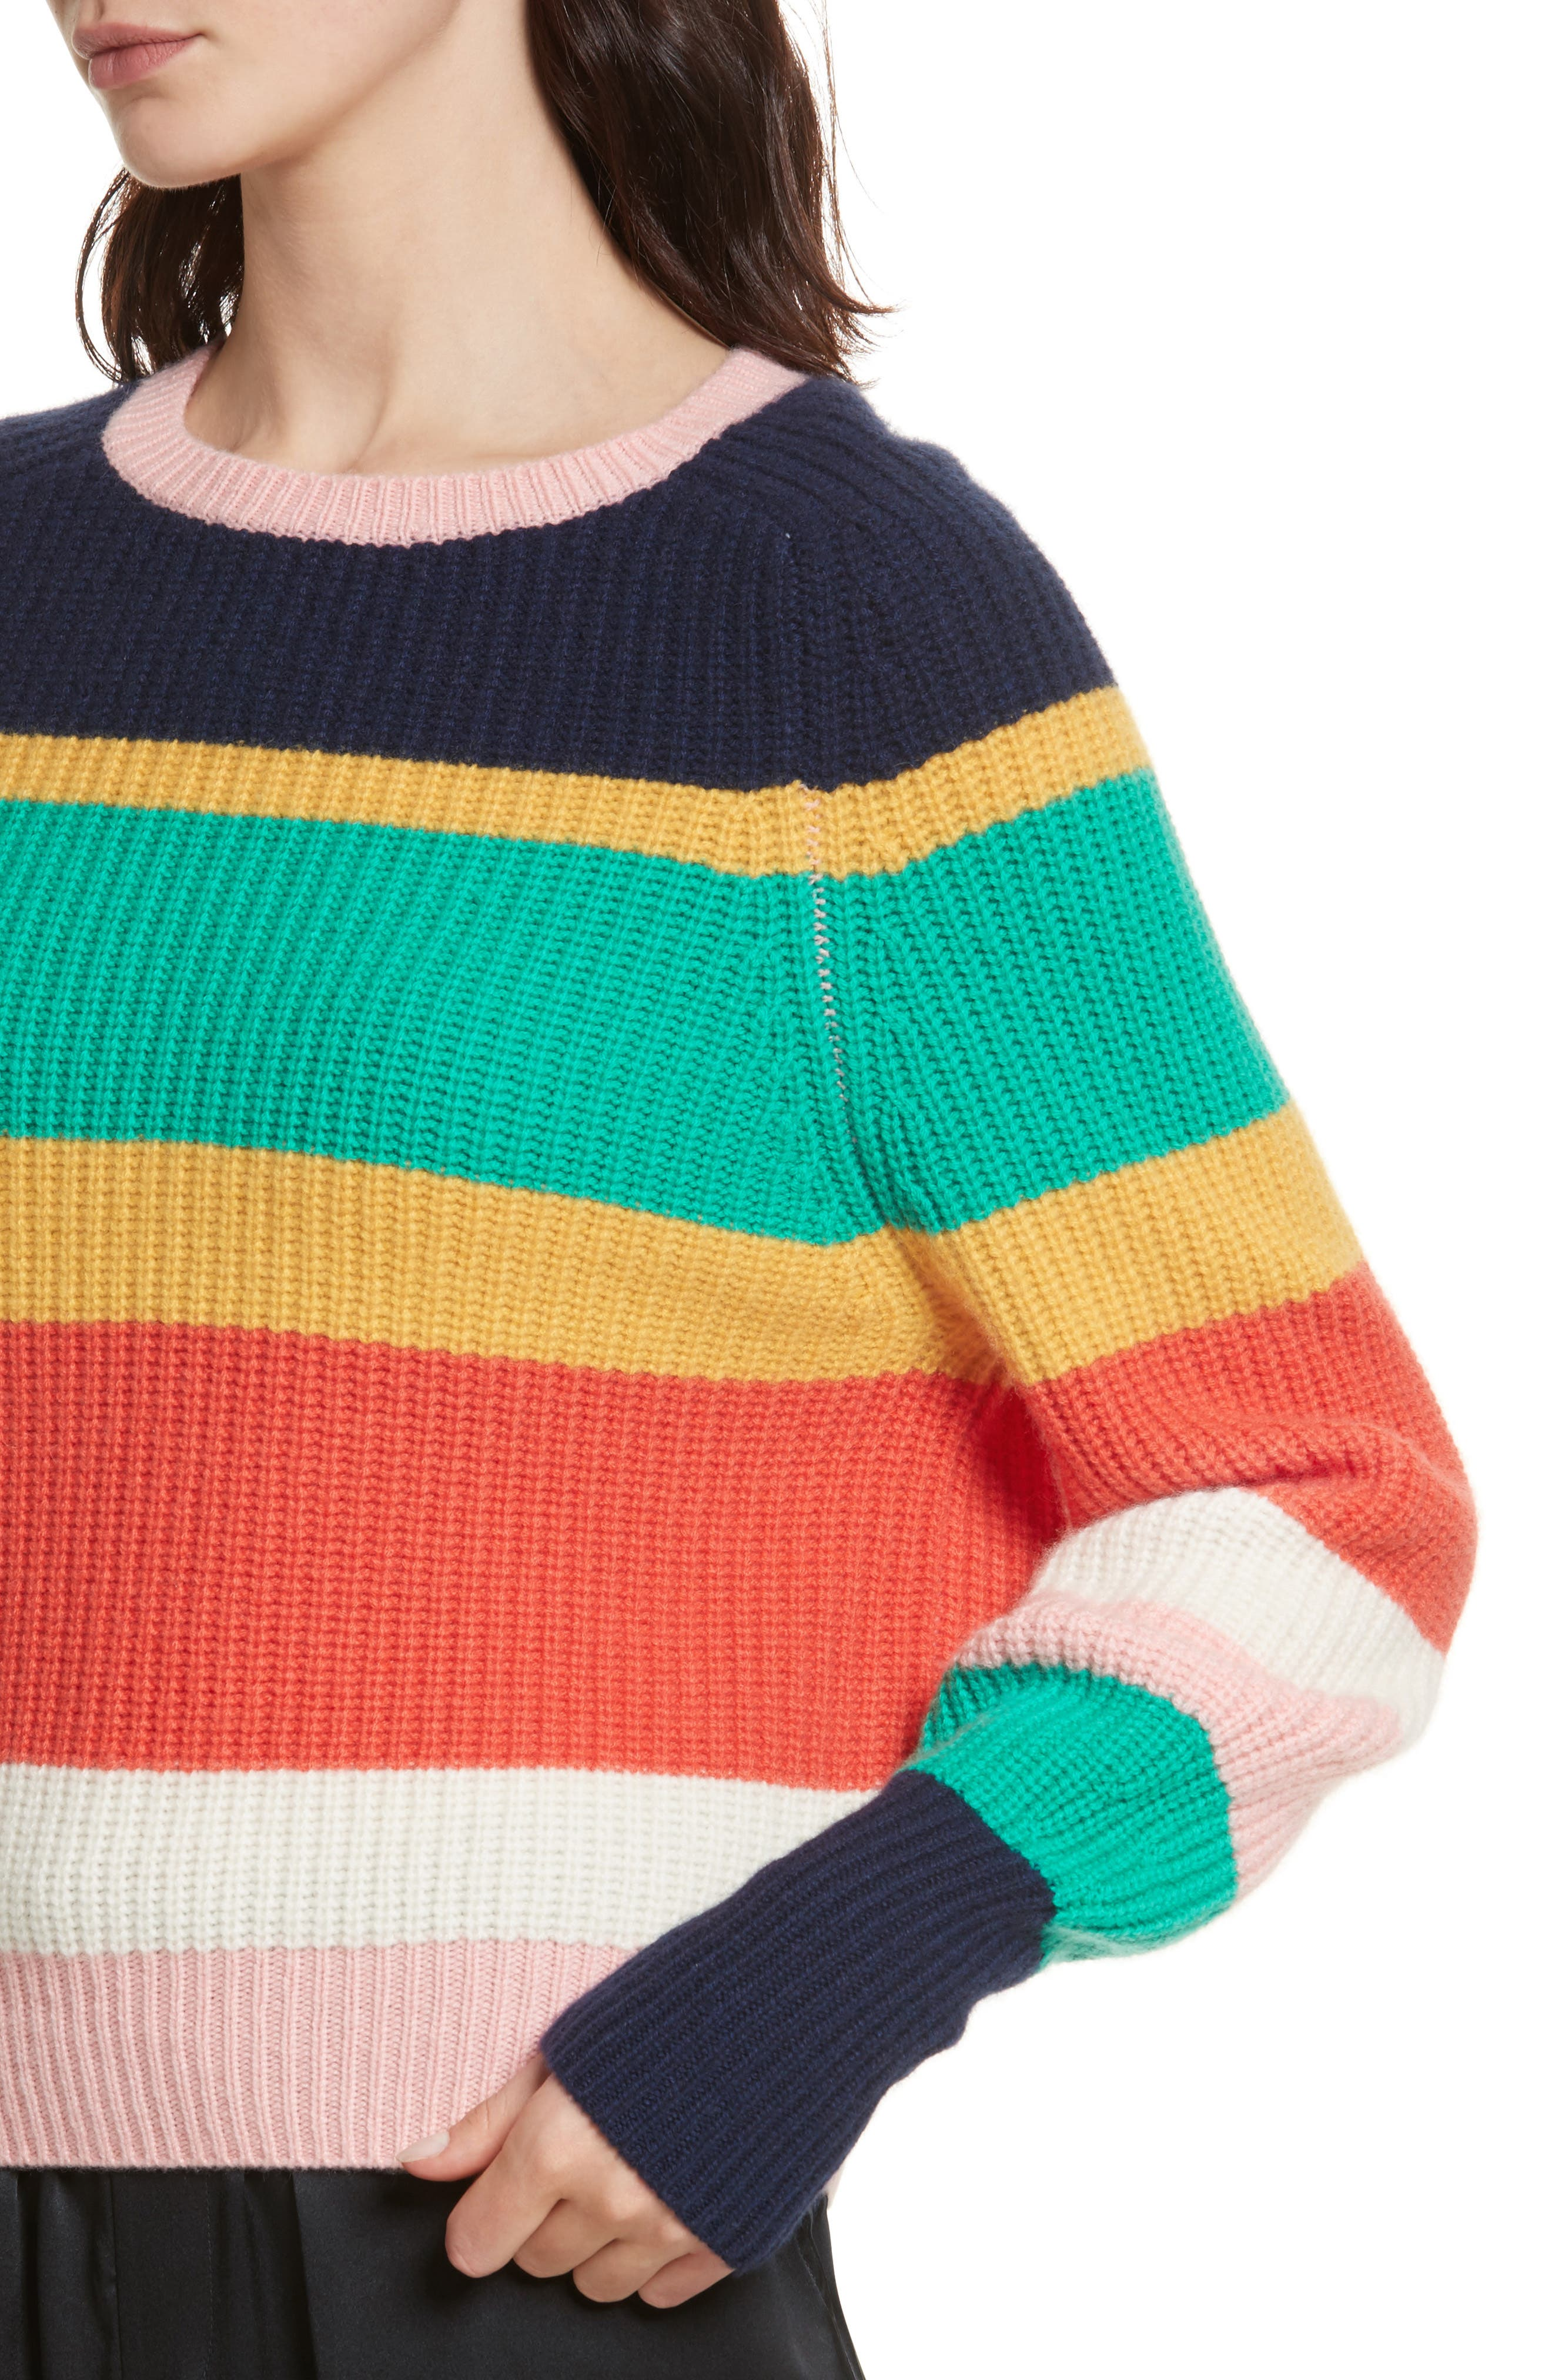 Haady Stripe Wool & Cashmere Sweater,                             Alternate thumbnail 4, color,                             475